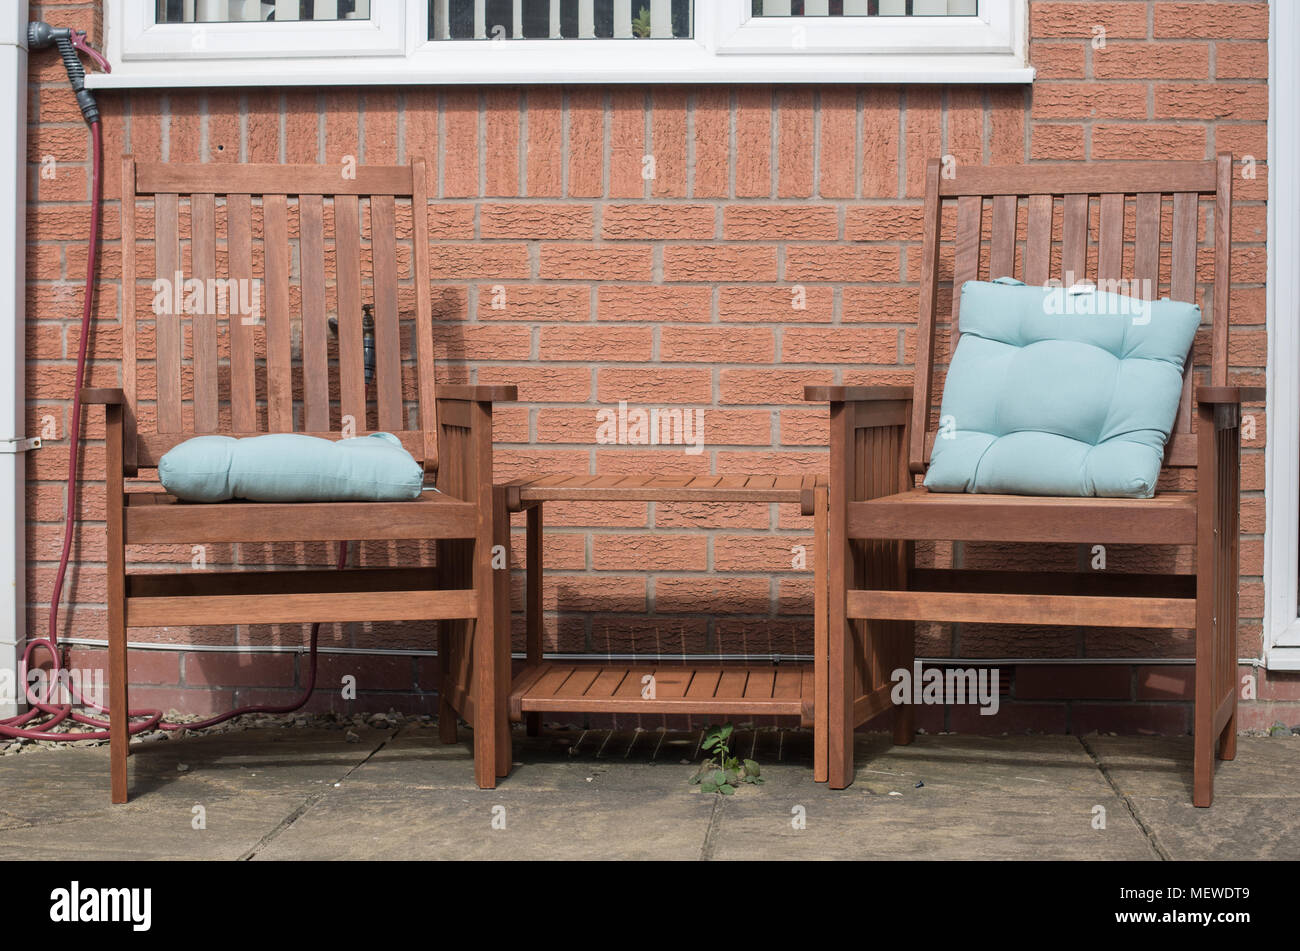 Relaxing garden chairs with blue cushions on a patio in bright sunshine - Stock Image